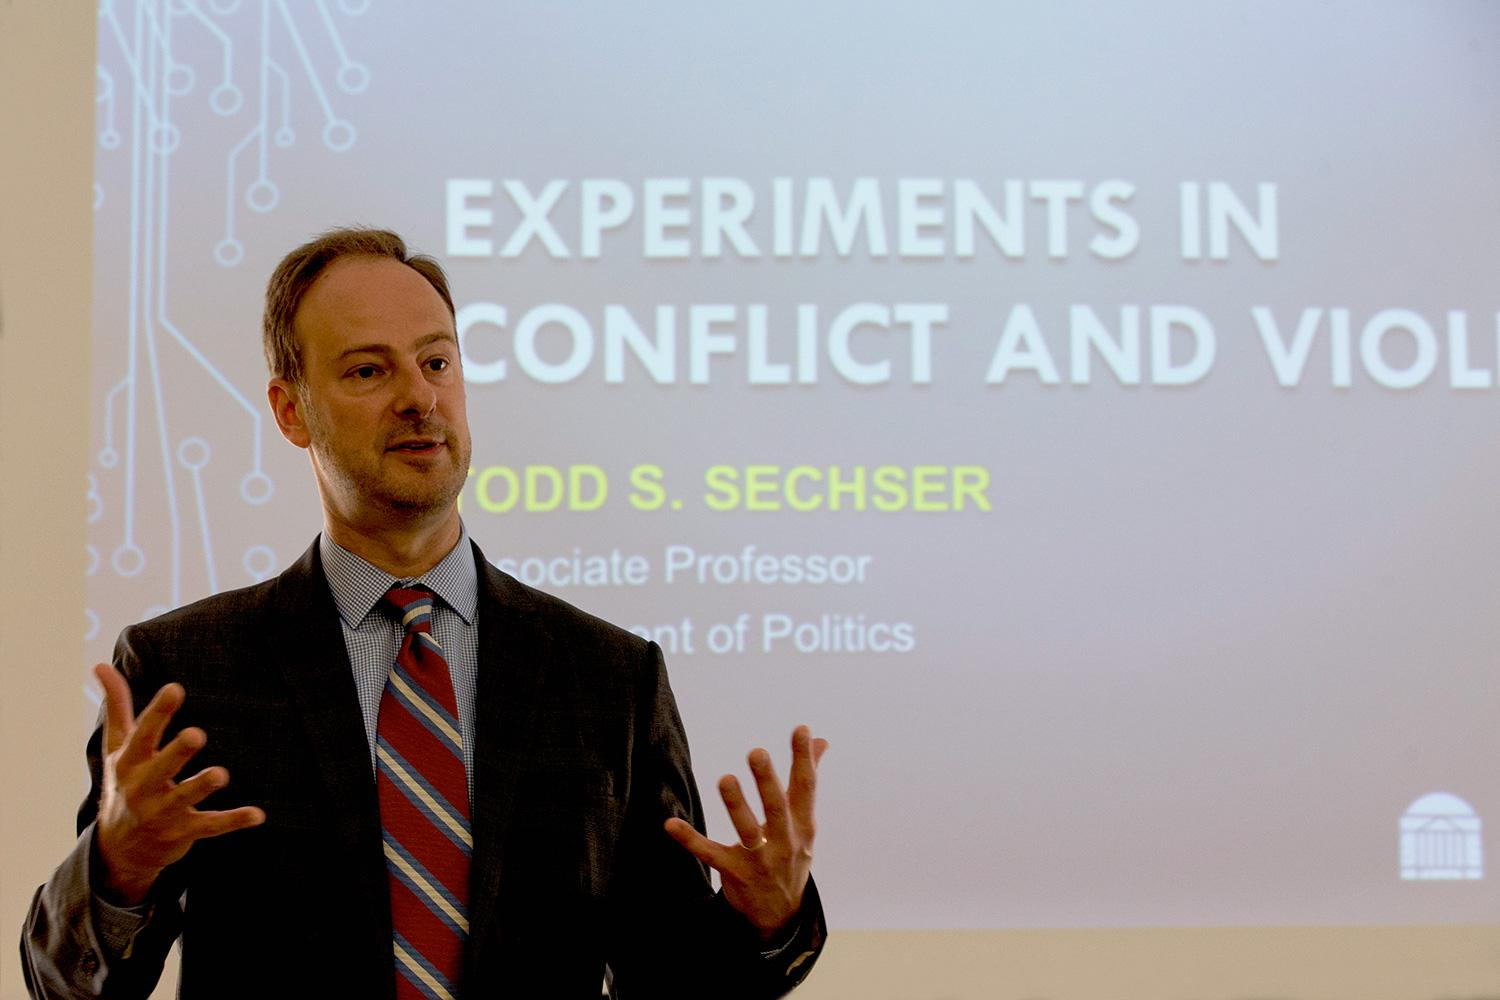 Participants in the Department of Politics Experimental Lab provide researchers with valuable data about whether or not exposure to violence affects aggression.